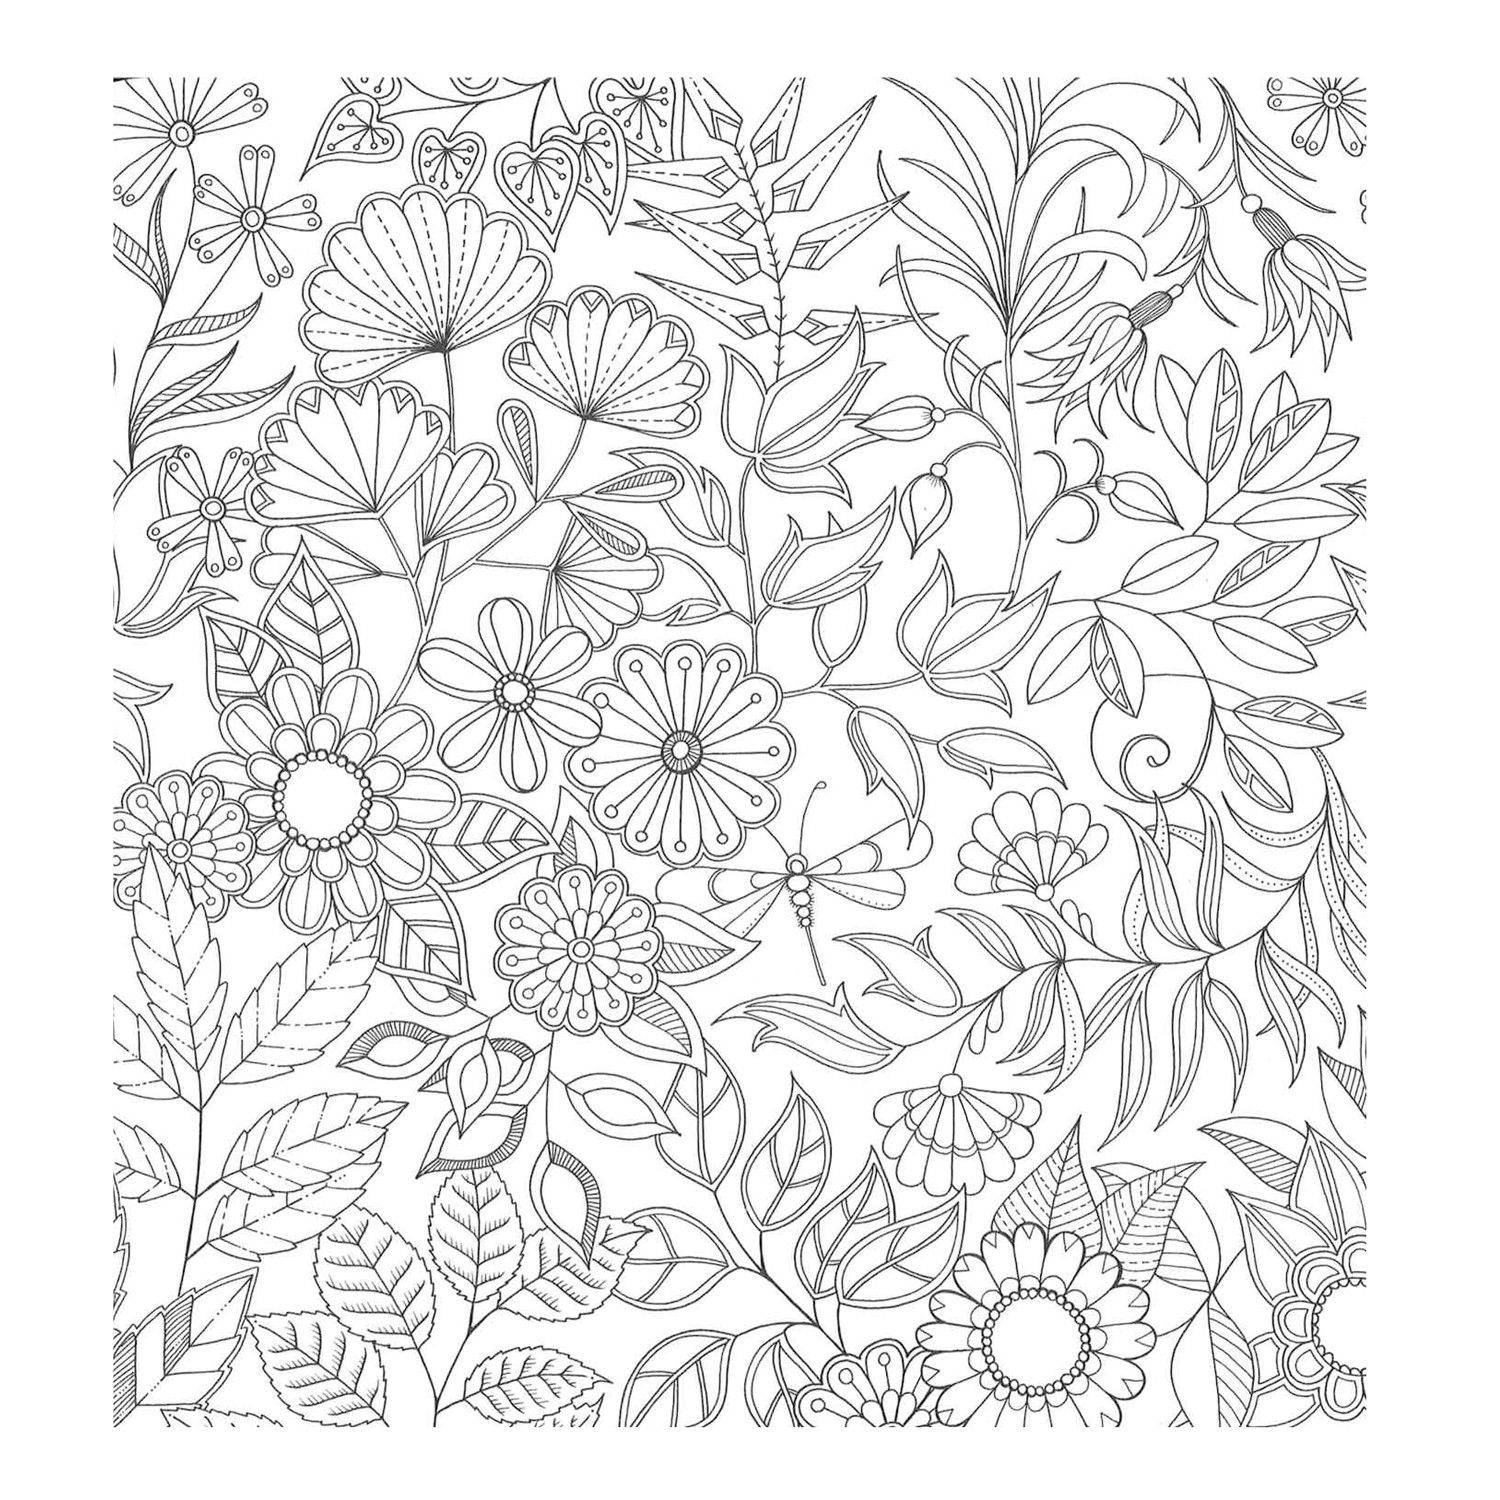 Coloring Books For Grown Ups: Inspirational Coloring Pages From Secret Garden, Enchanted